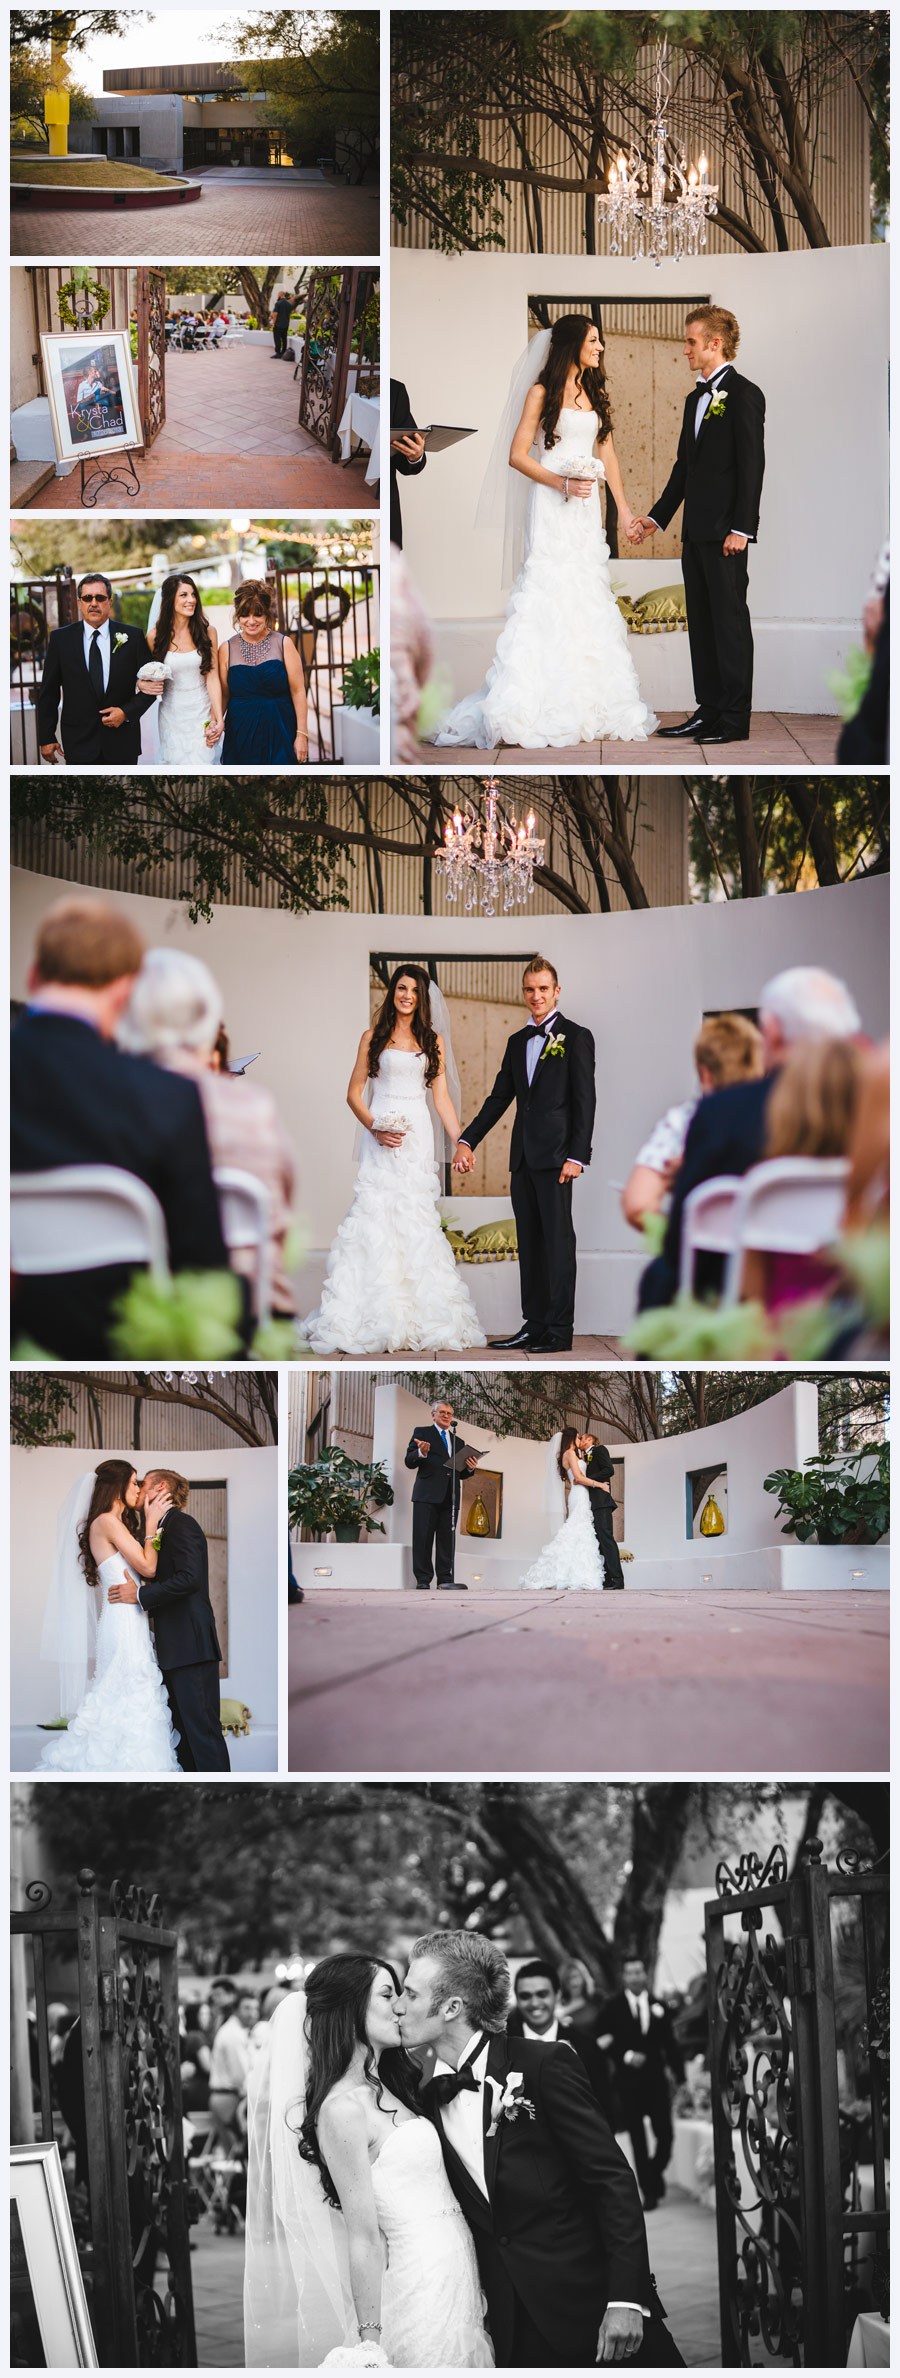 Tucson Wedding Photographer Wedding at Tucson Museum of Art